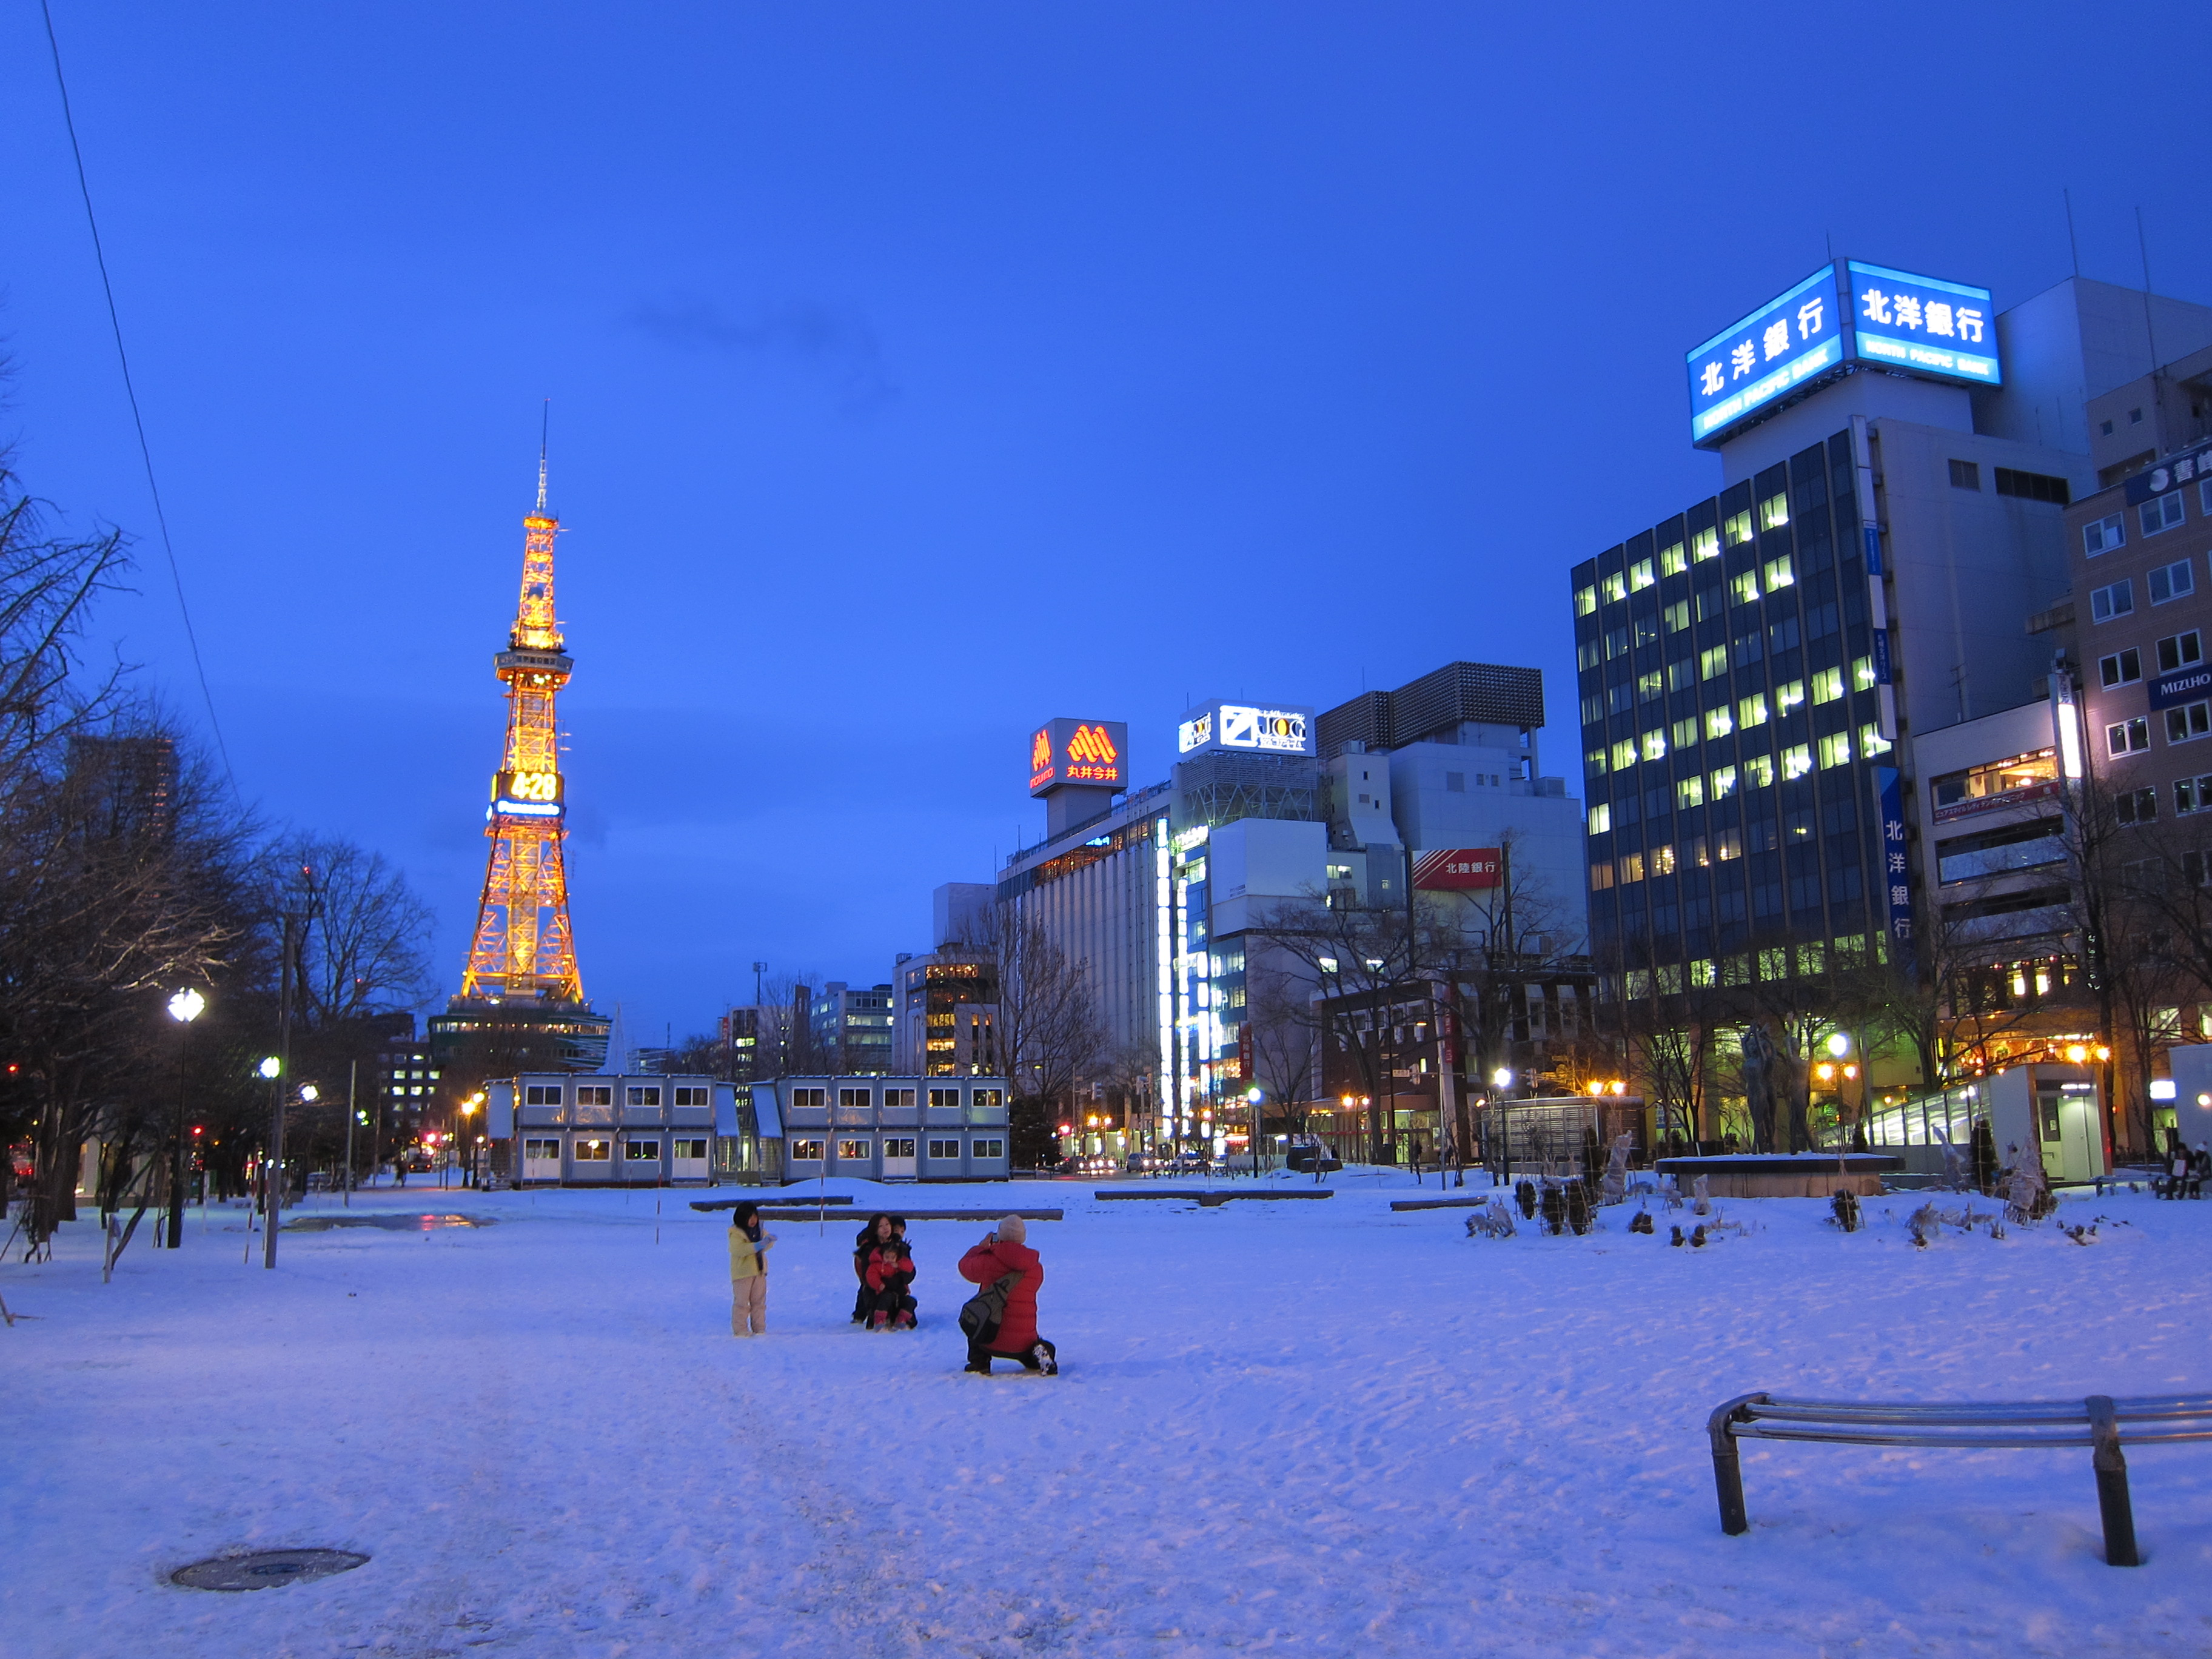 https://upload.wikimedia.org/wikipedia/commons/d/d8/View_of_Sapporo_TV_Tower_from_Odori_Park%282011%29.JPG